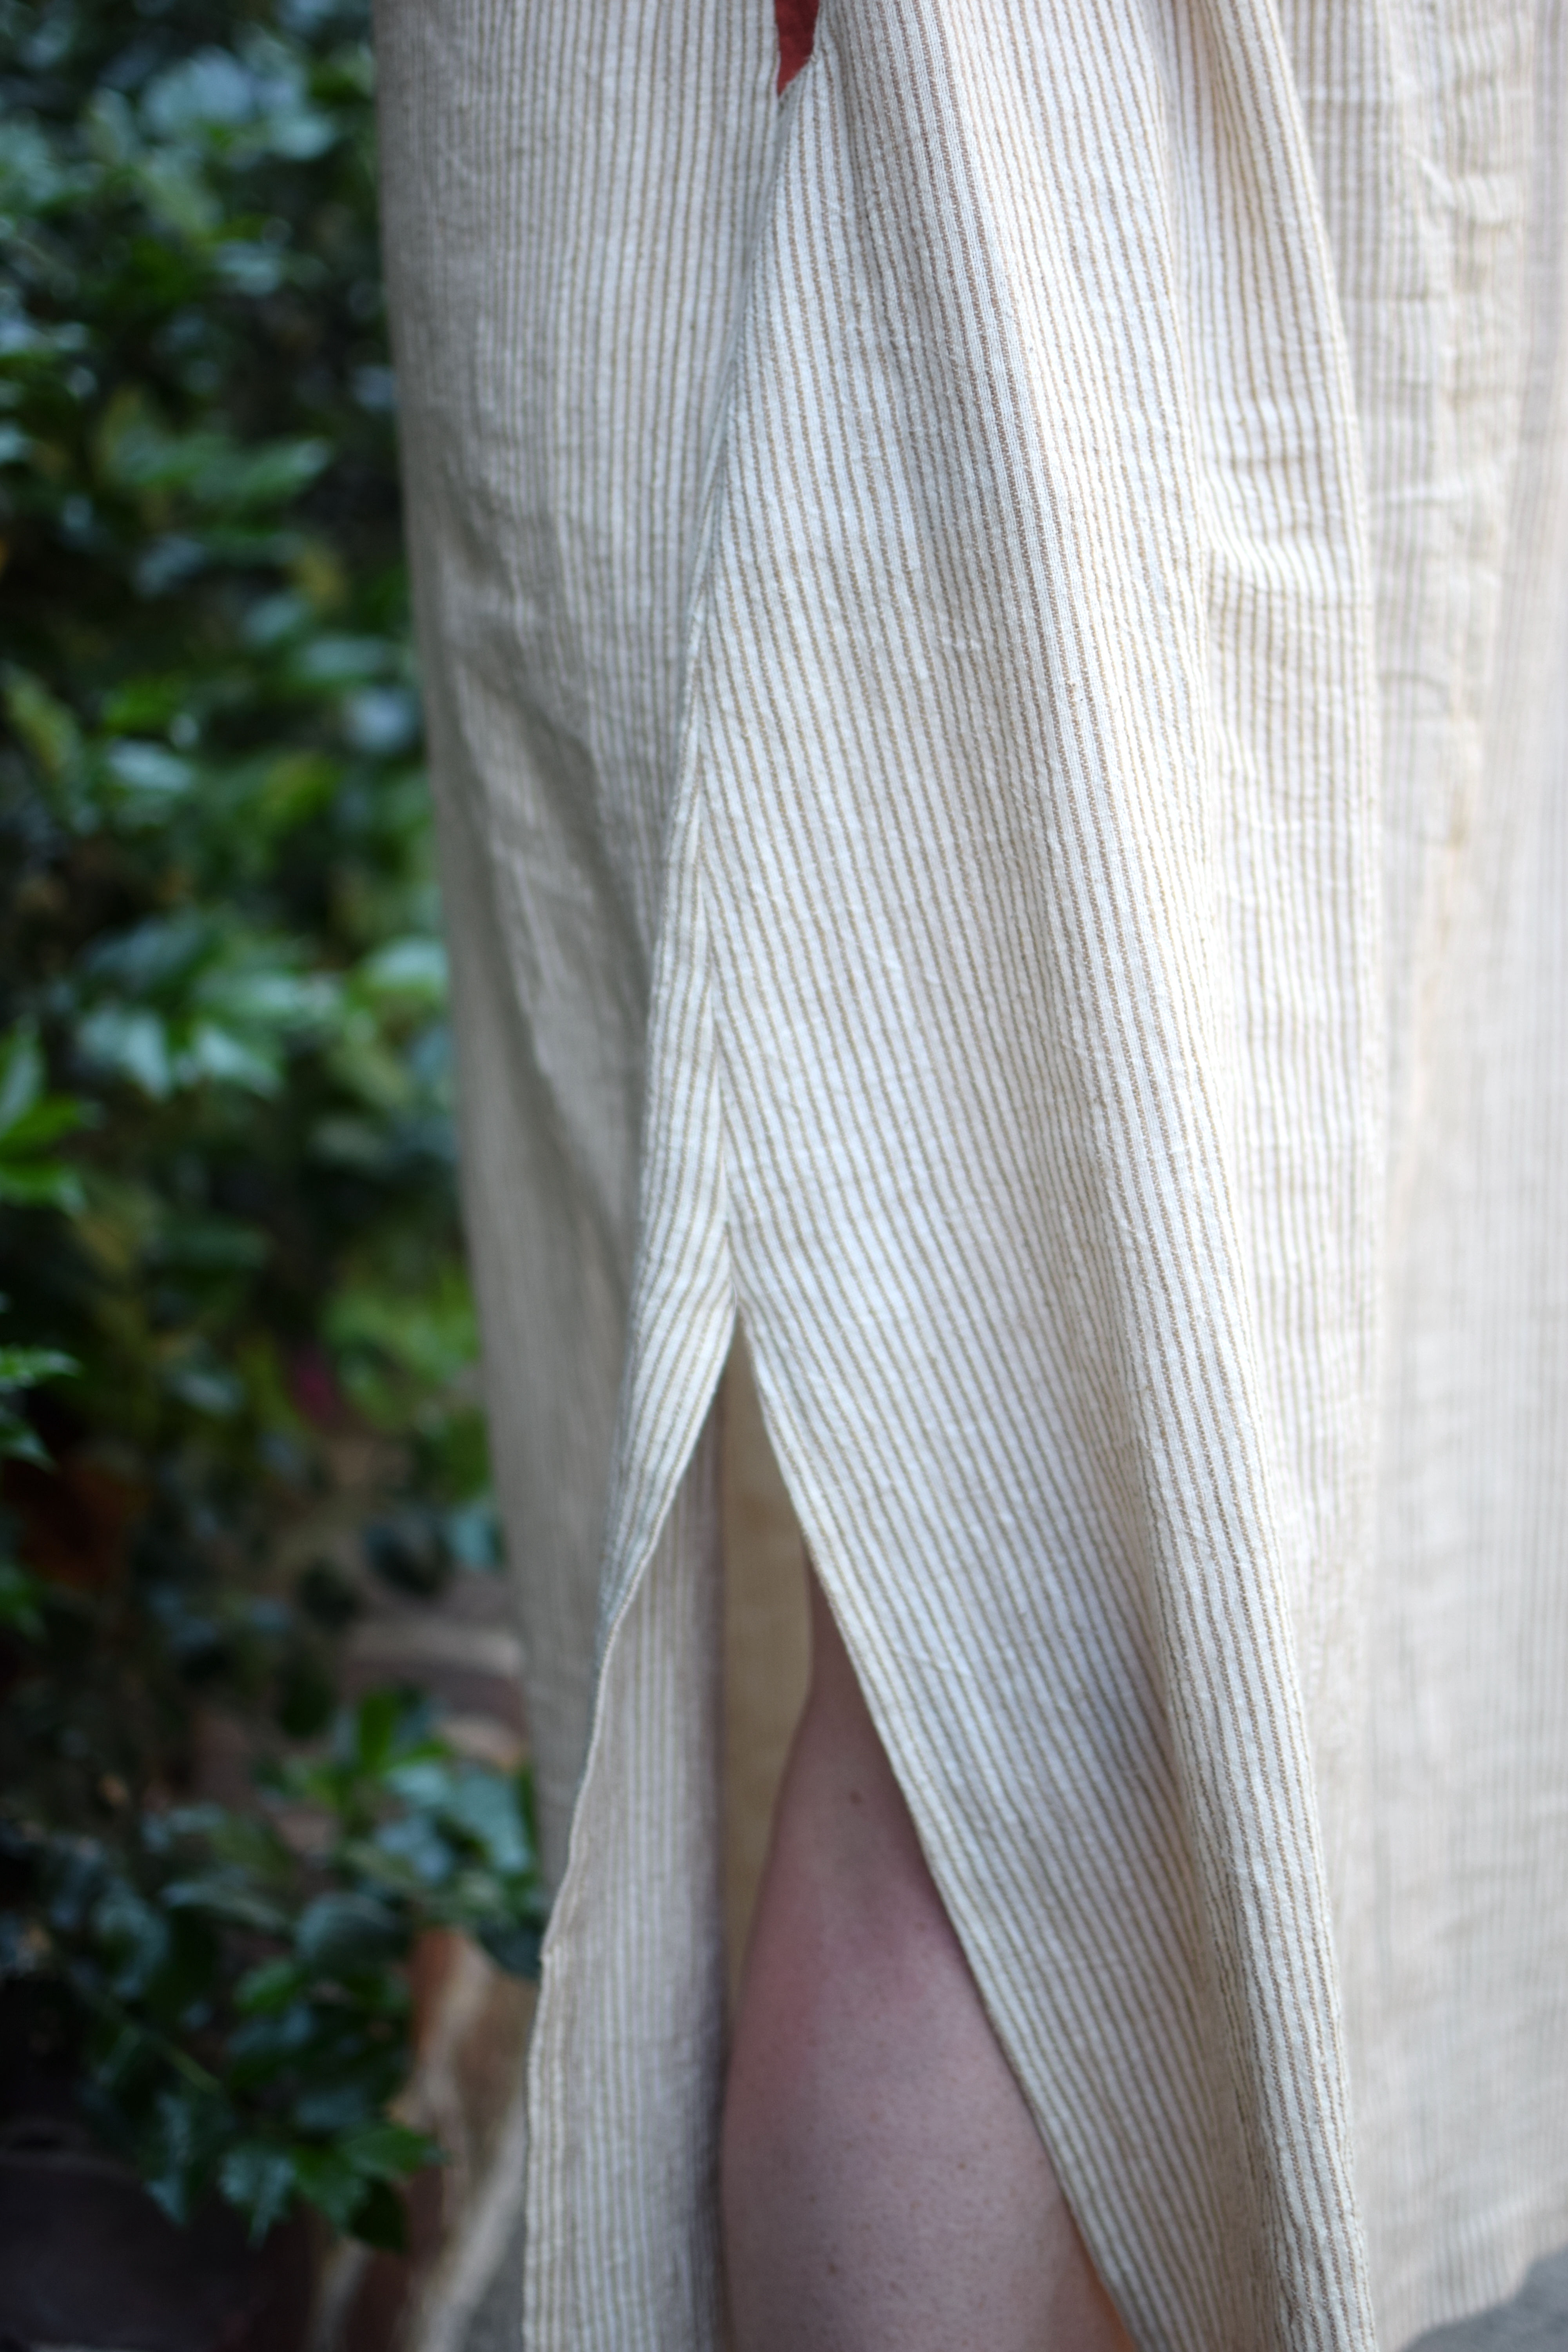 a detail view of the side slit on a brown and white striped dress.